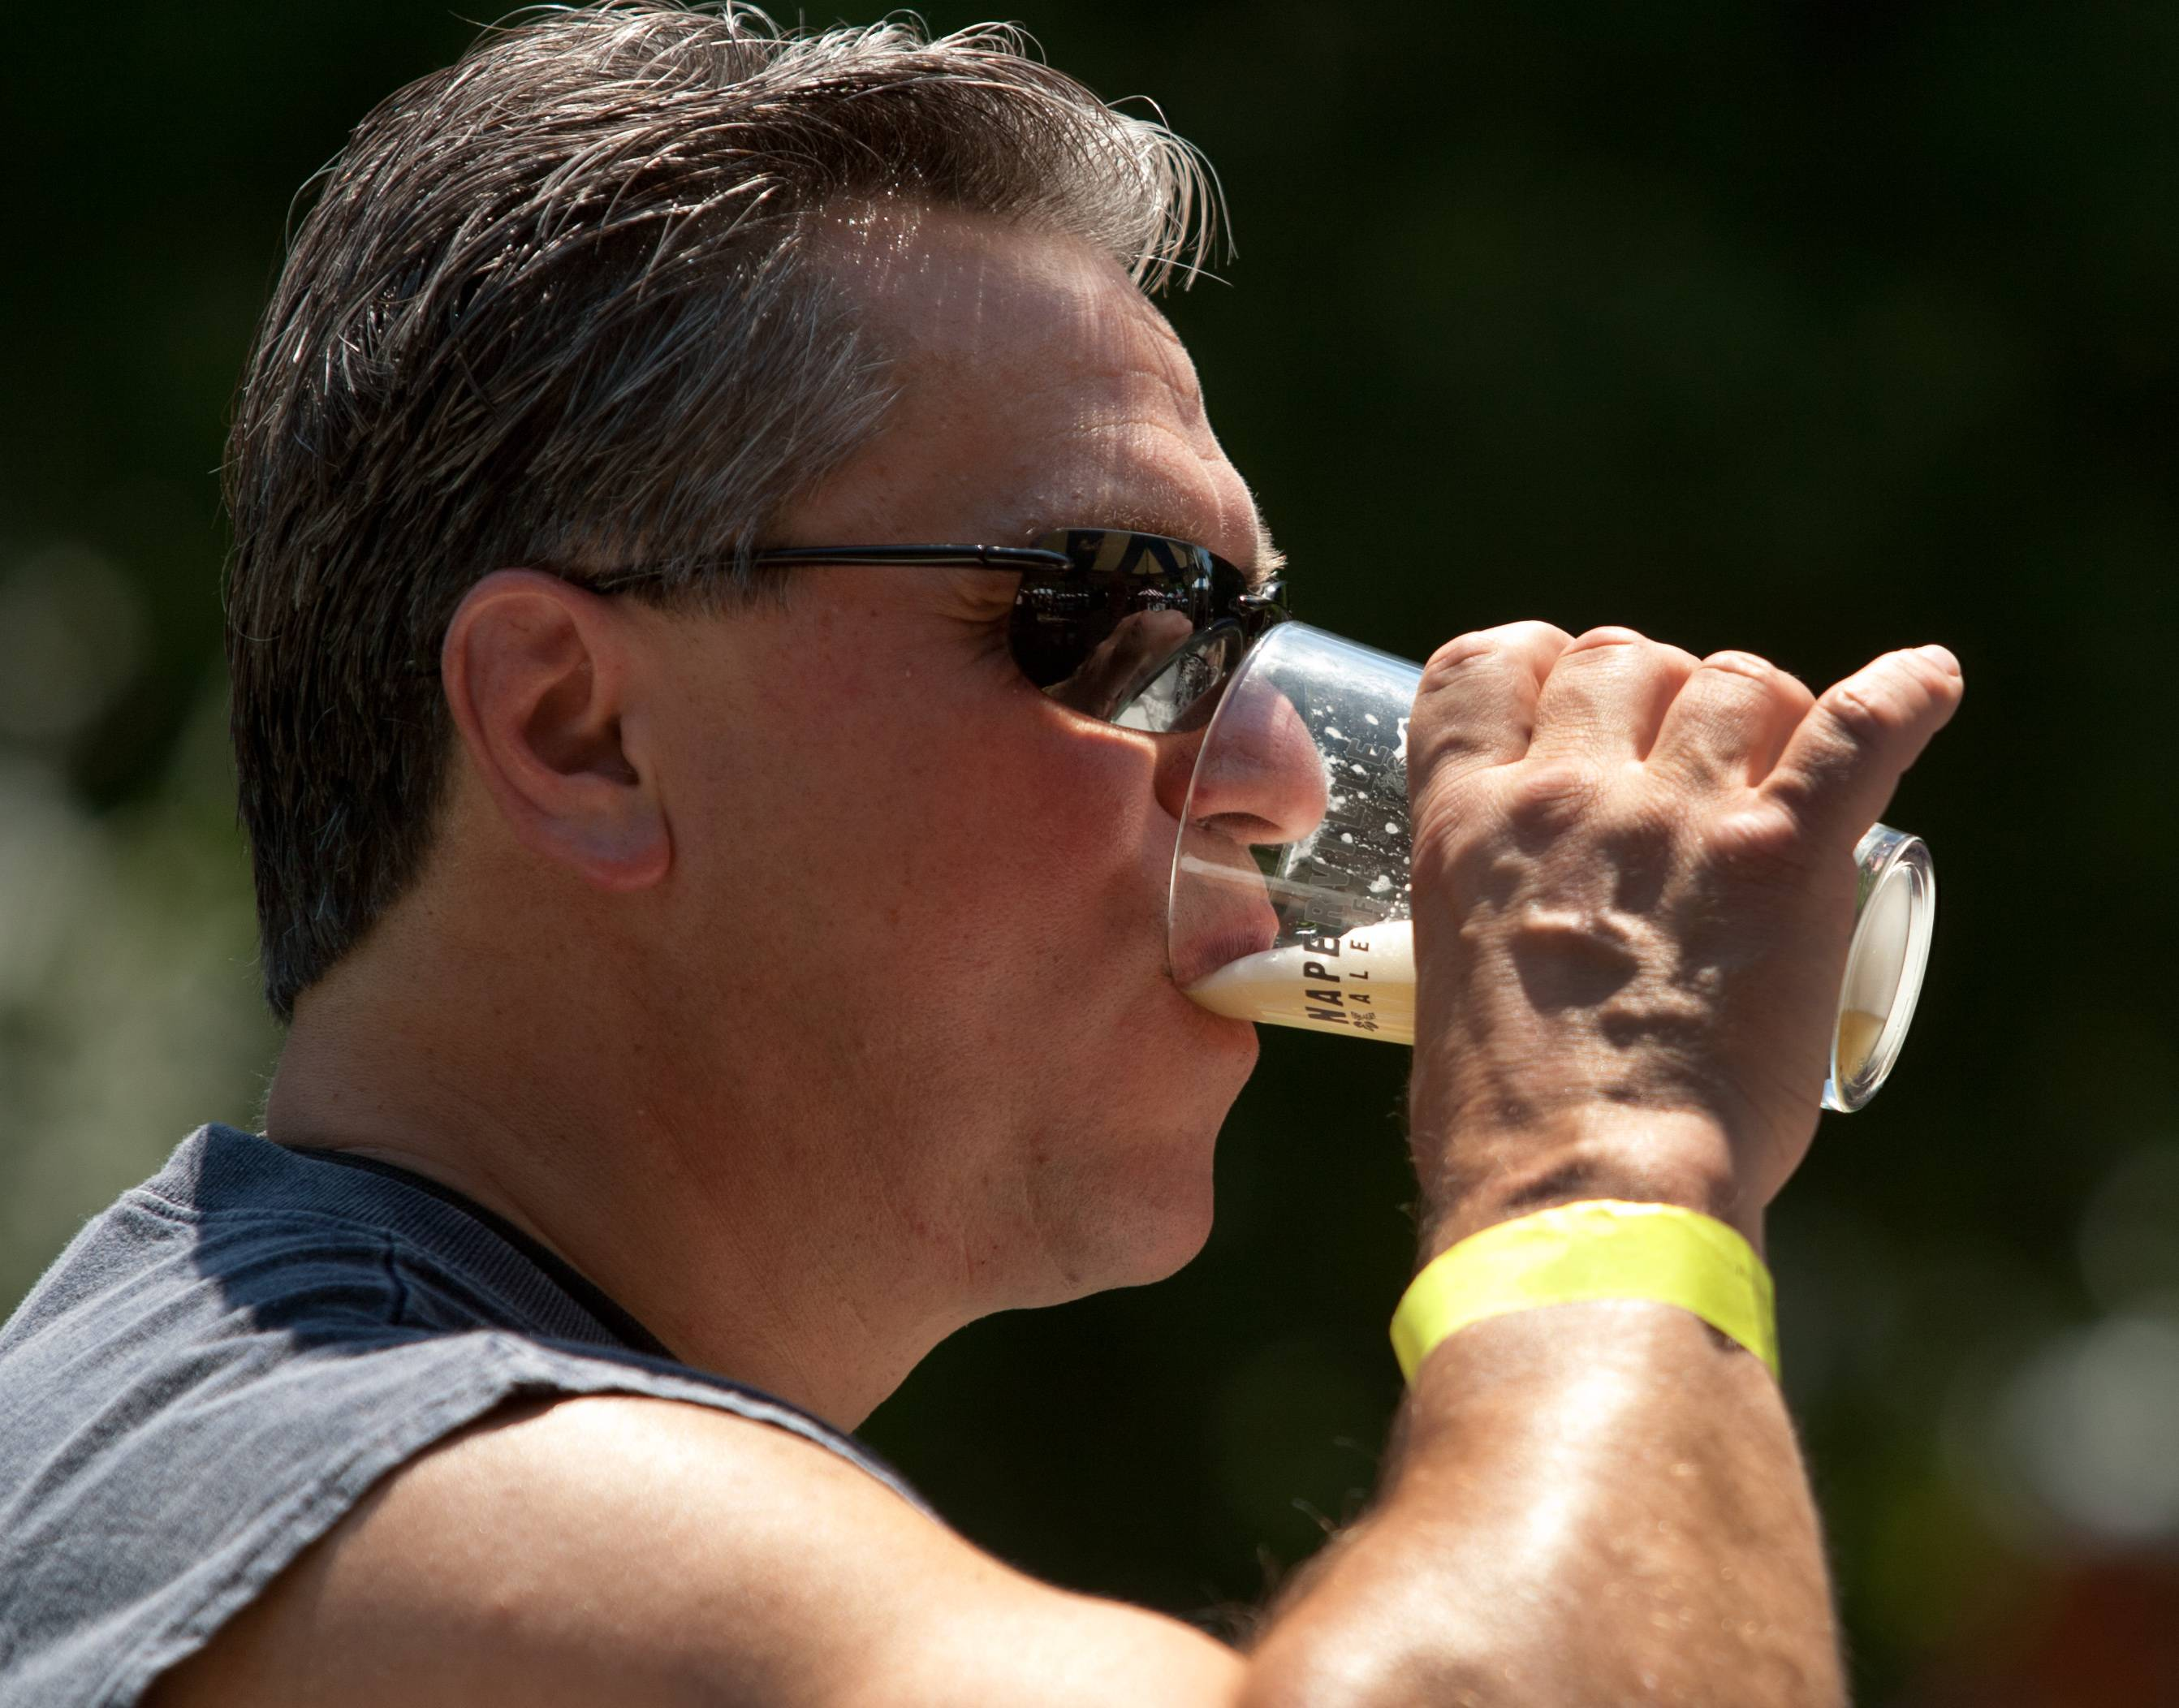 Beer lovers can sample from more than 200 beers and hard ciders from breweries across the United States during the second annual Naperville Ale Fest.